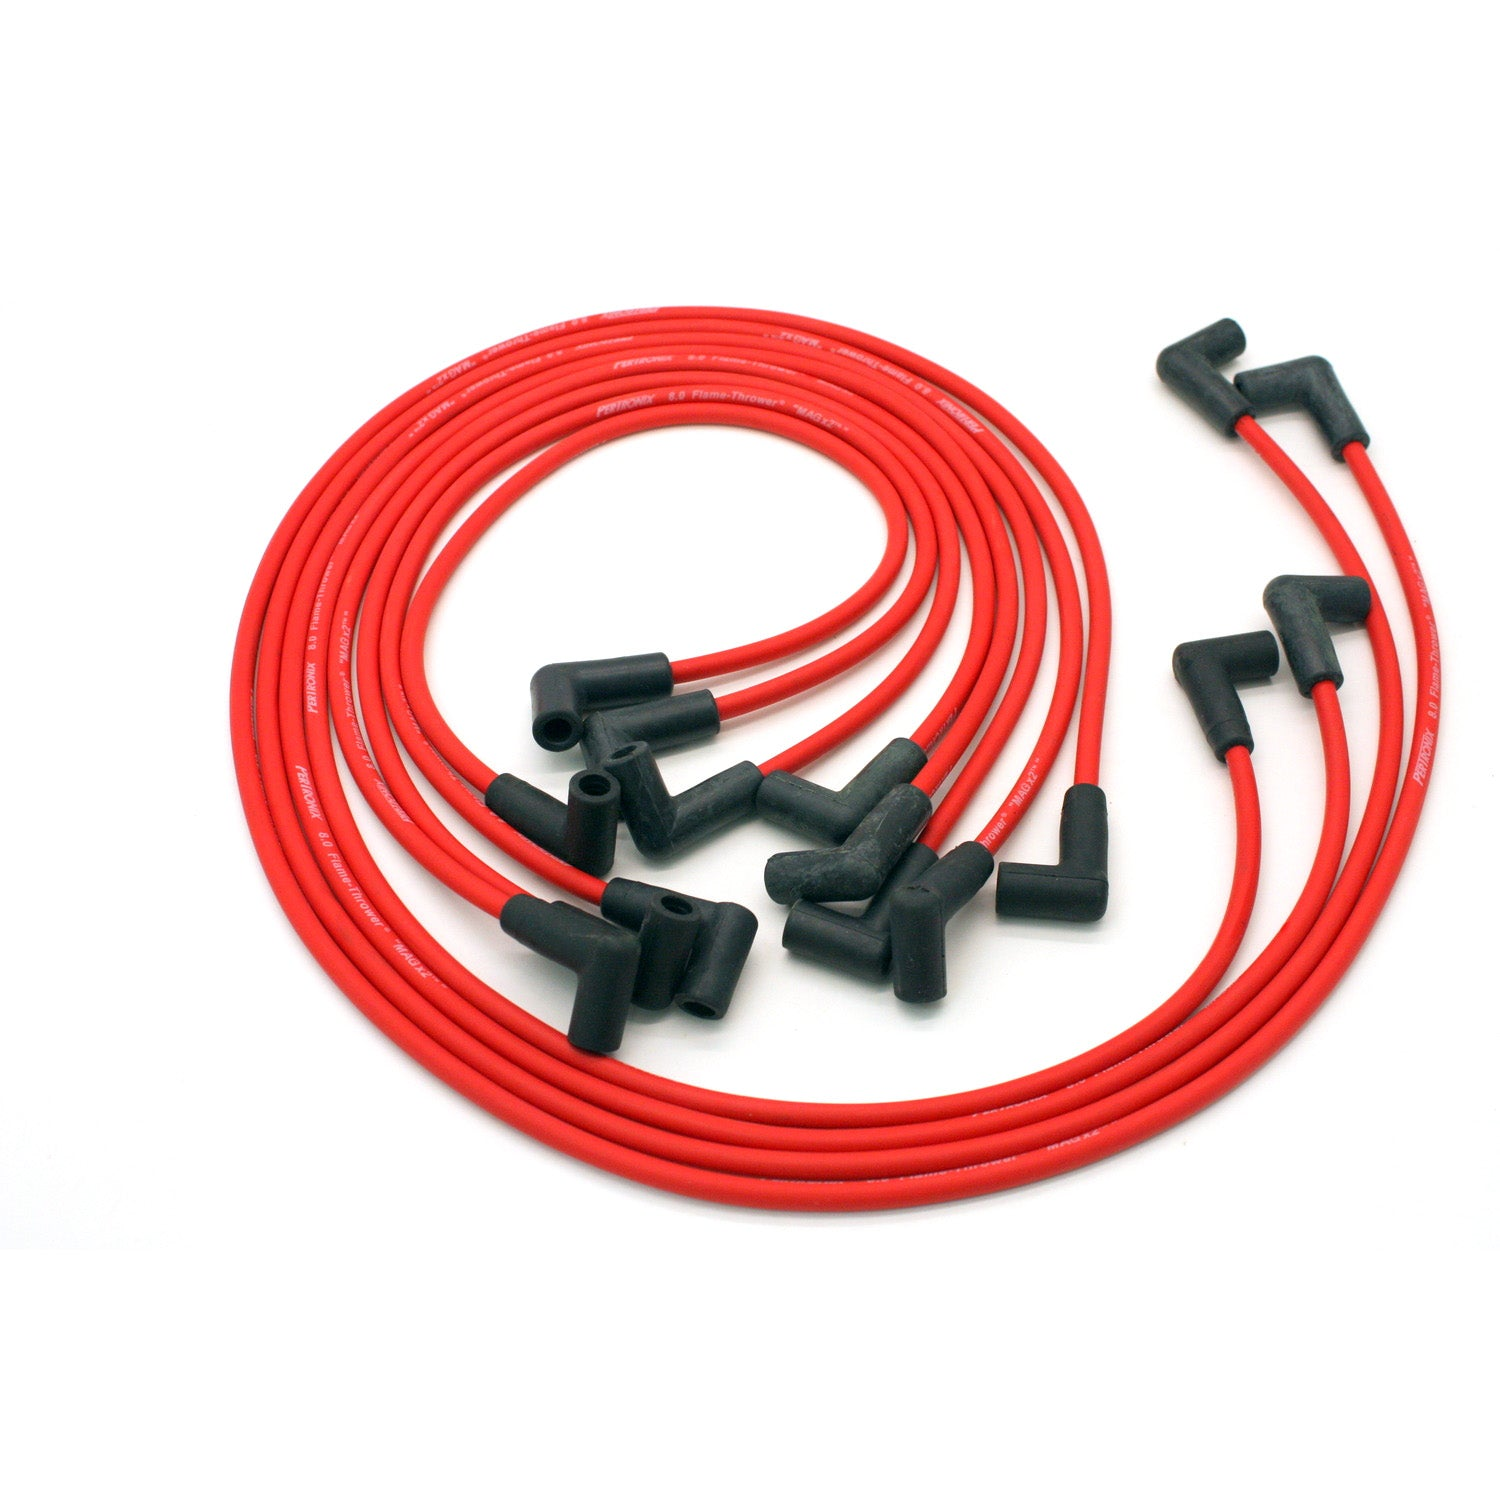 PerTronix 808419 Flame-Thrower Spark Plug Wires 8 cyl 8mm 74-82 Corvette HEI Custom Fit Red